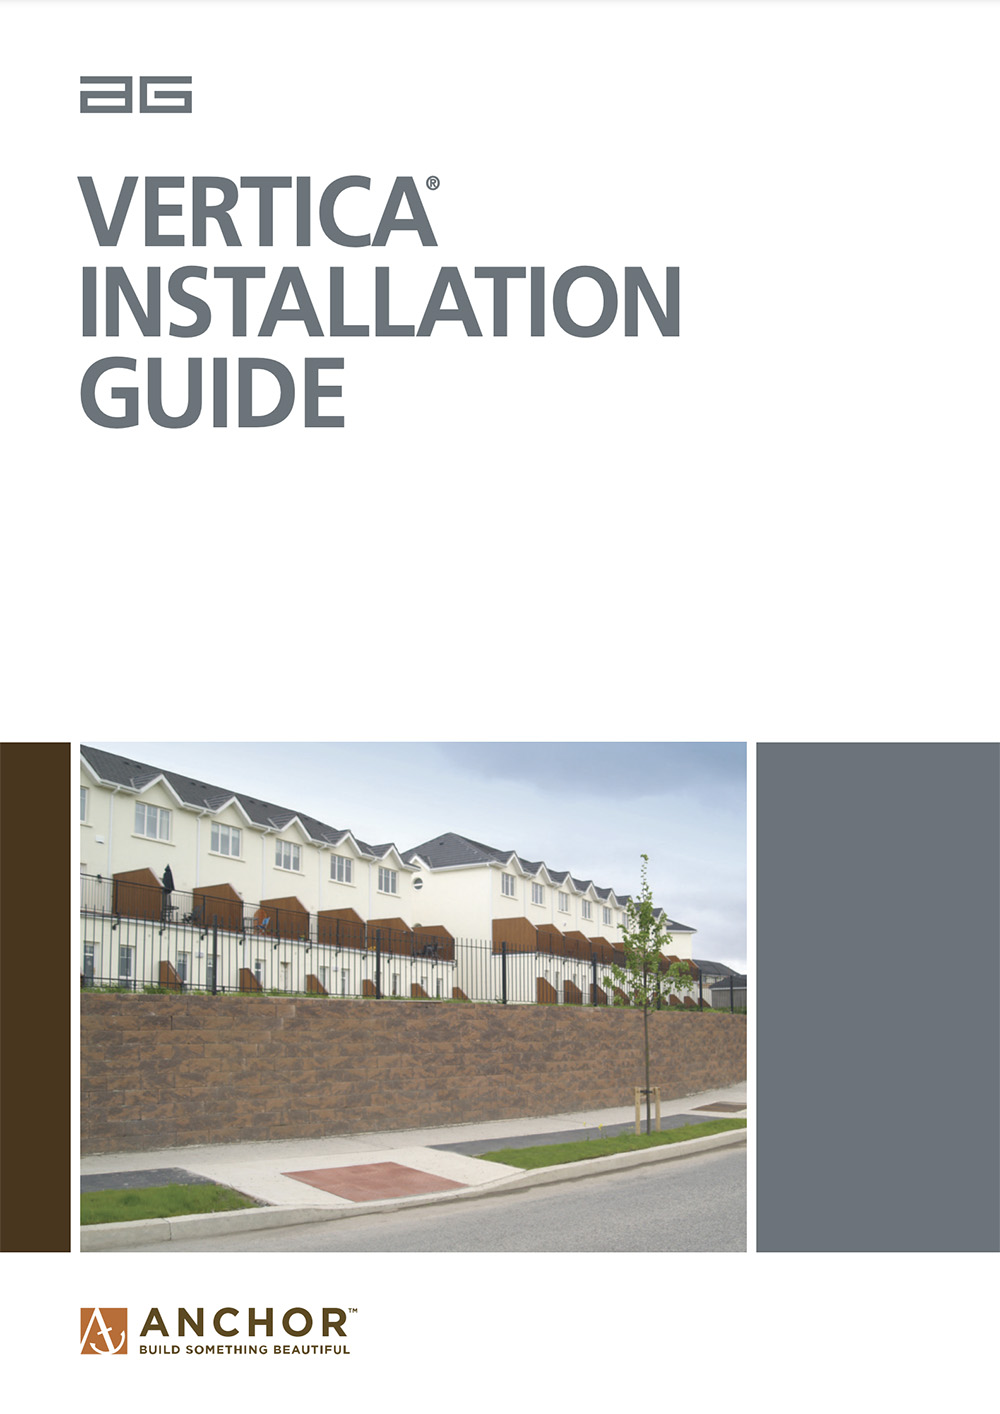 Associated image for the download: Anchor Vertica® Installation Guide